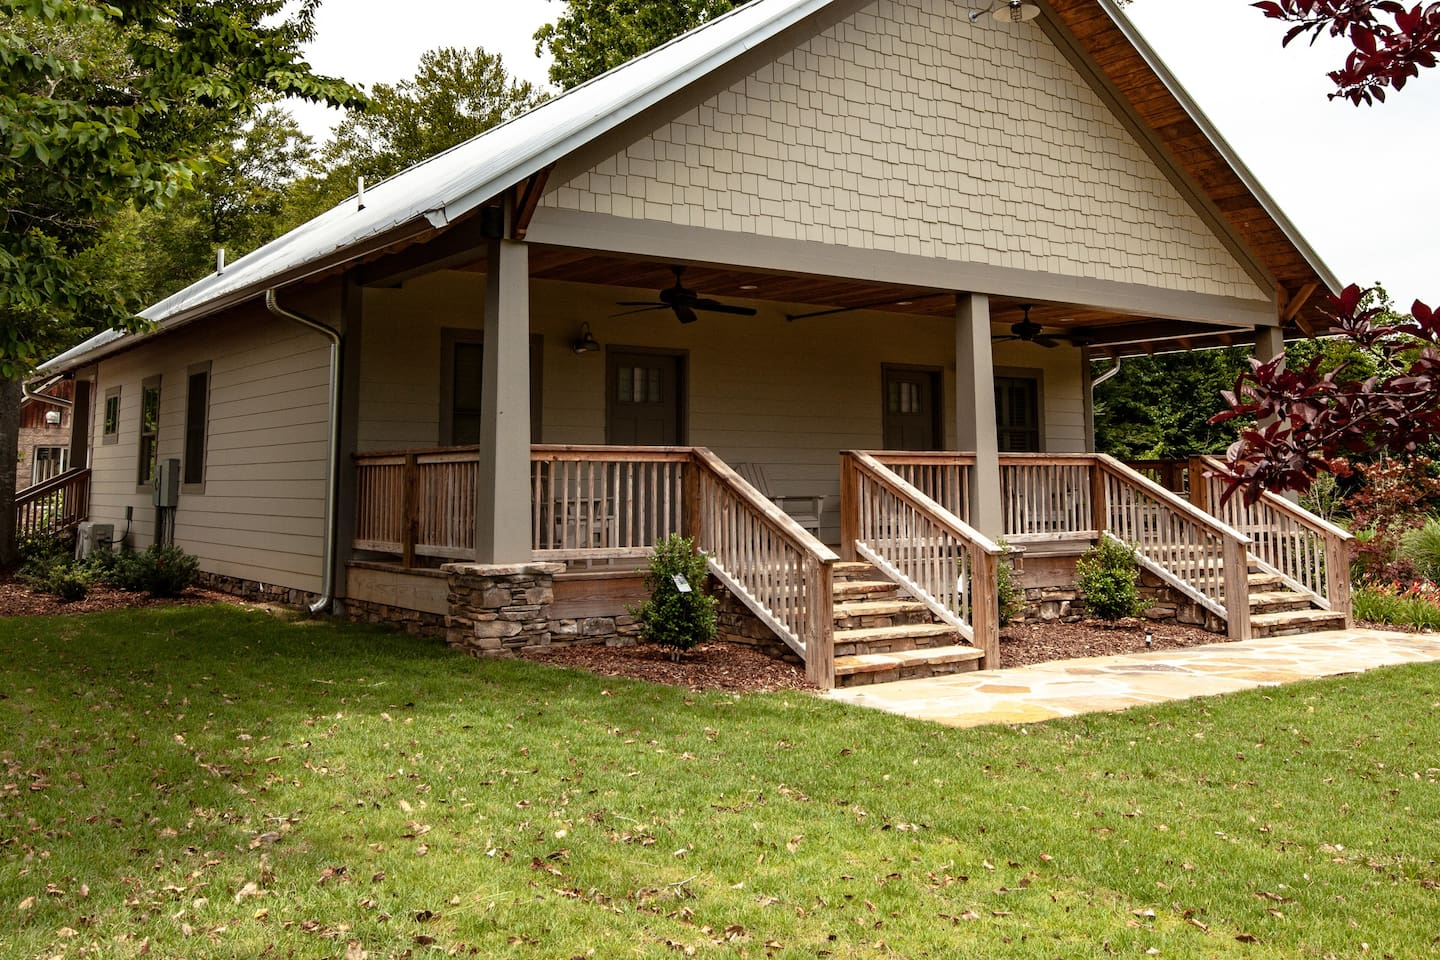 Front entrance to Bungalows #1 and #2